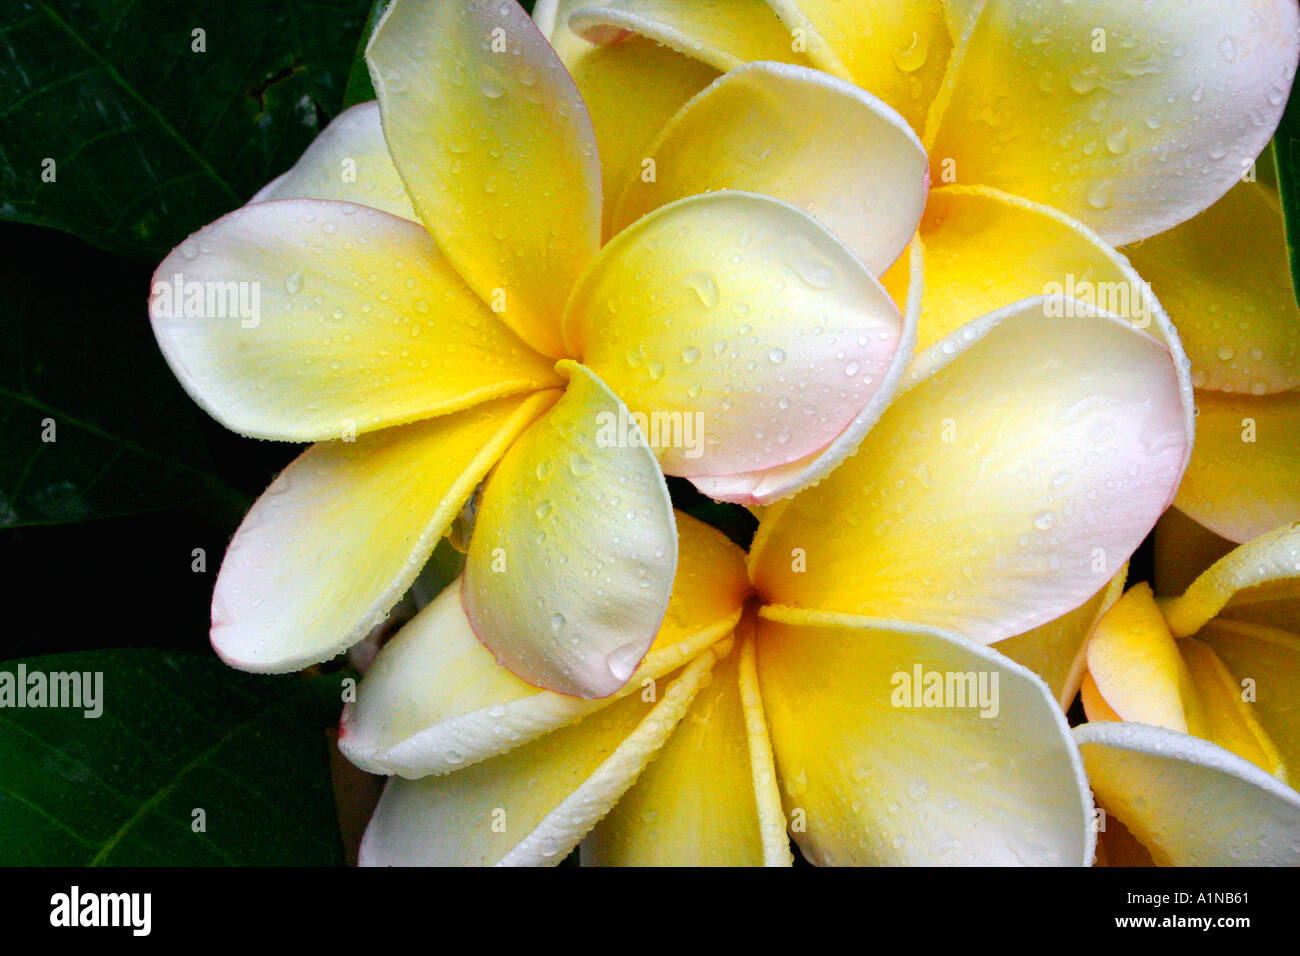 Closeup Of A Cluster Of White And Yellow Plumeria Frangipani Flowers